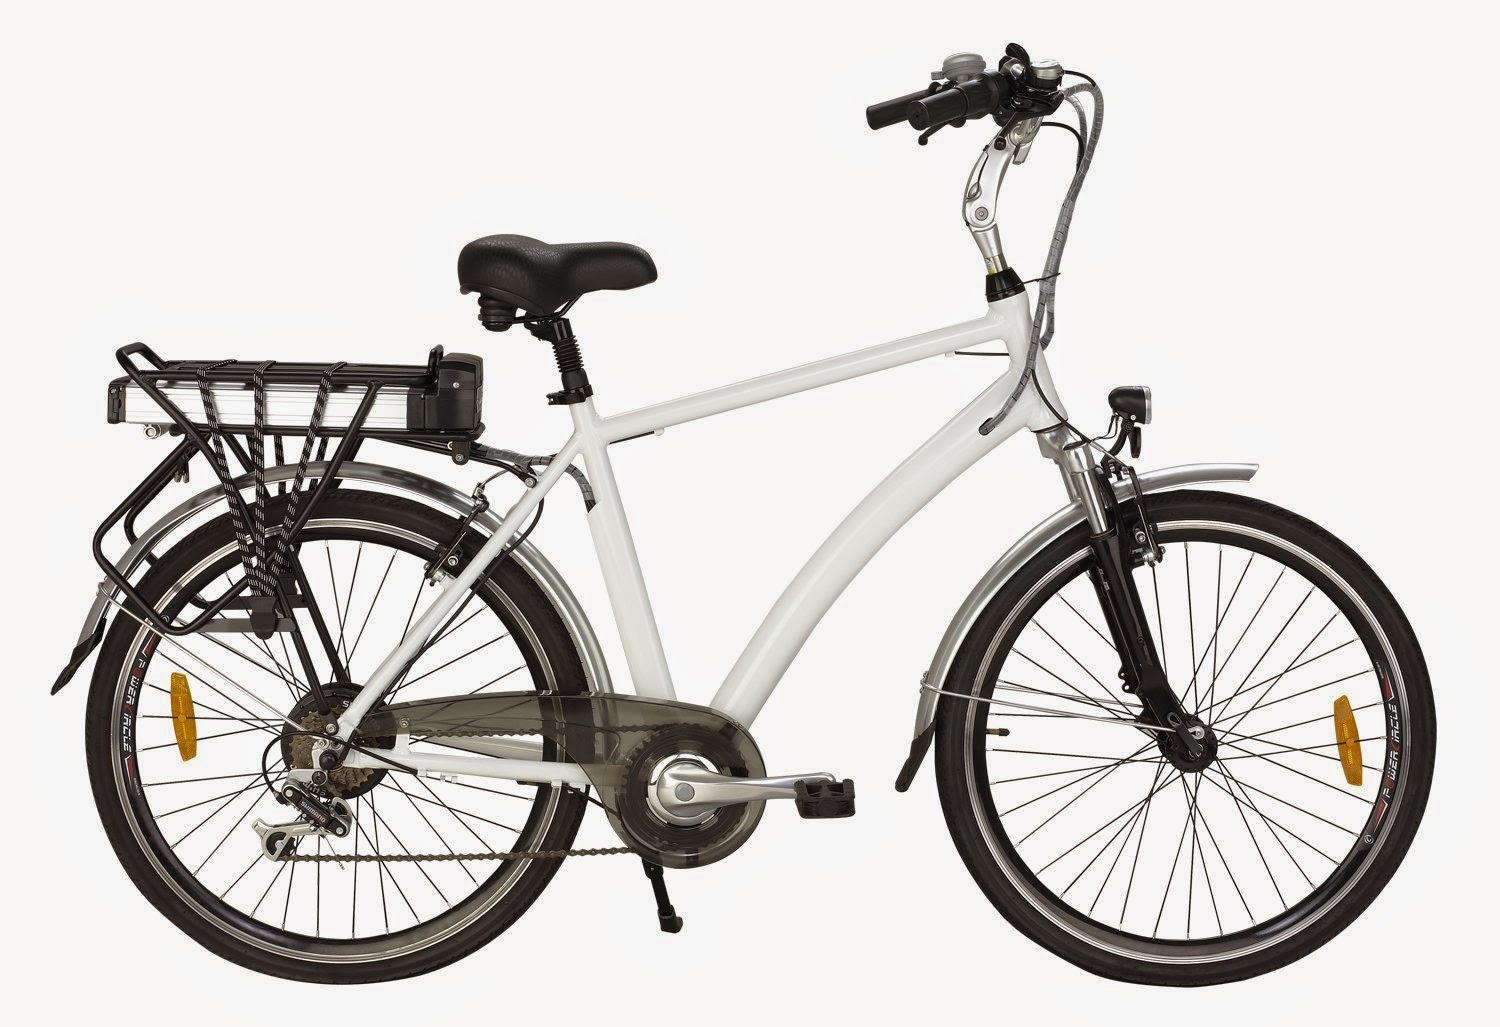 Yukon Trail Xplorer Xm26 Sport Hybrid Electric Bike Lithium Ion Battery